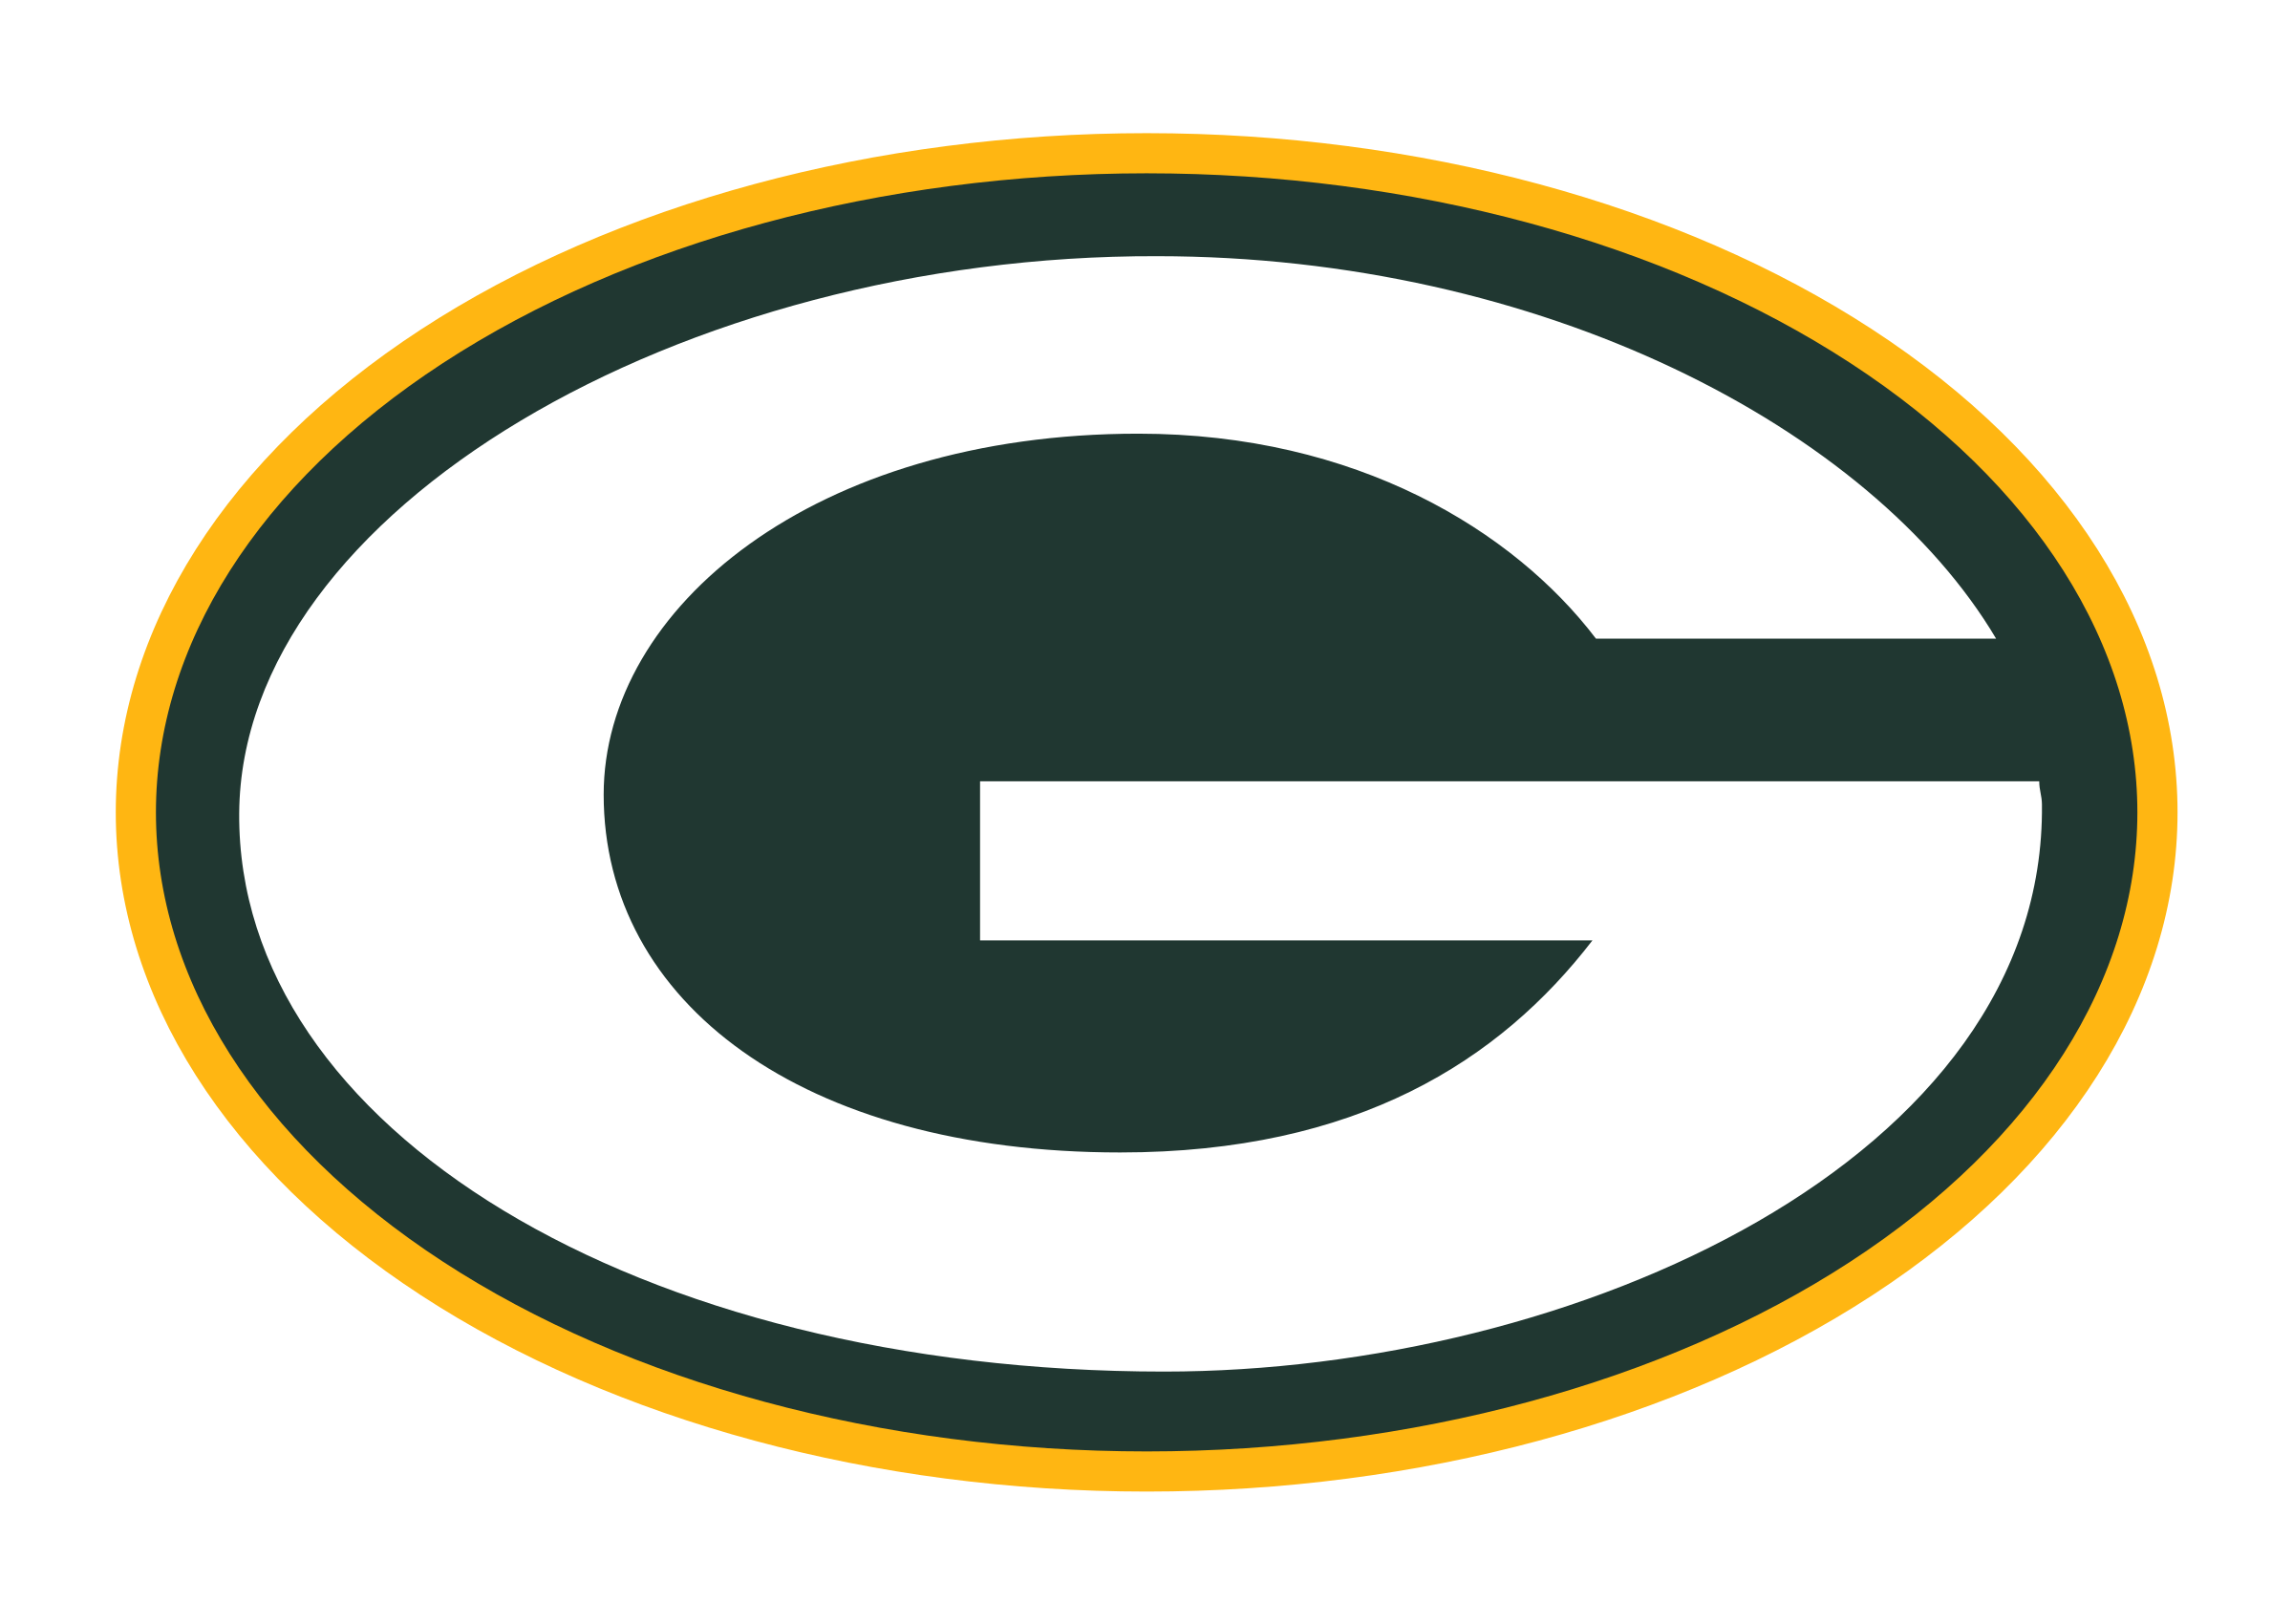 Green bay png. Packers logo transparent svg